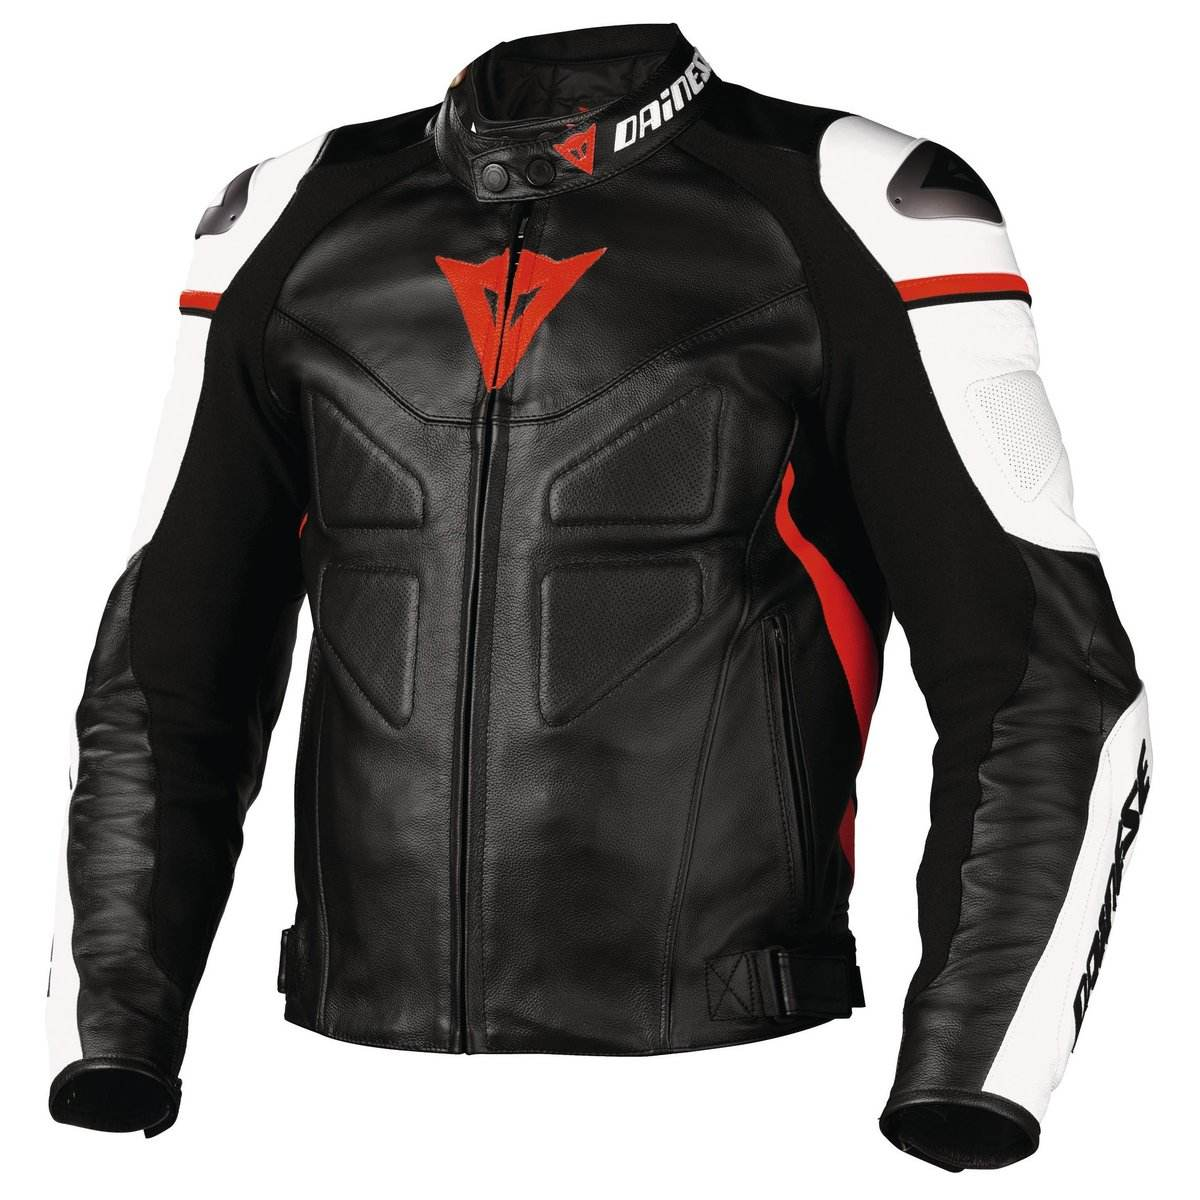 Top quality with armors motorcycle jacket